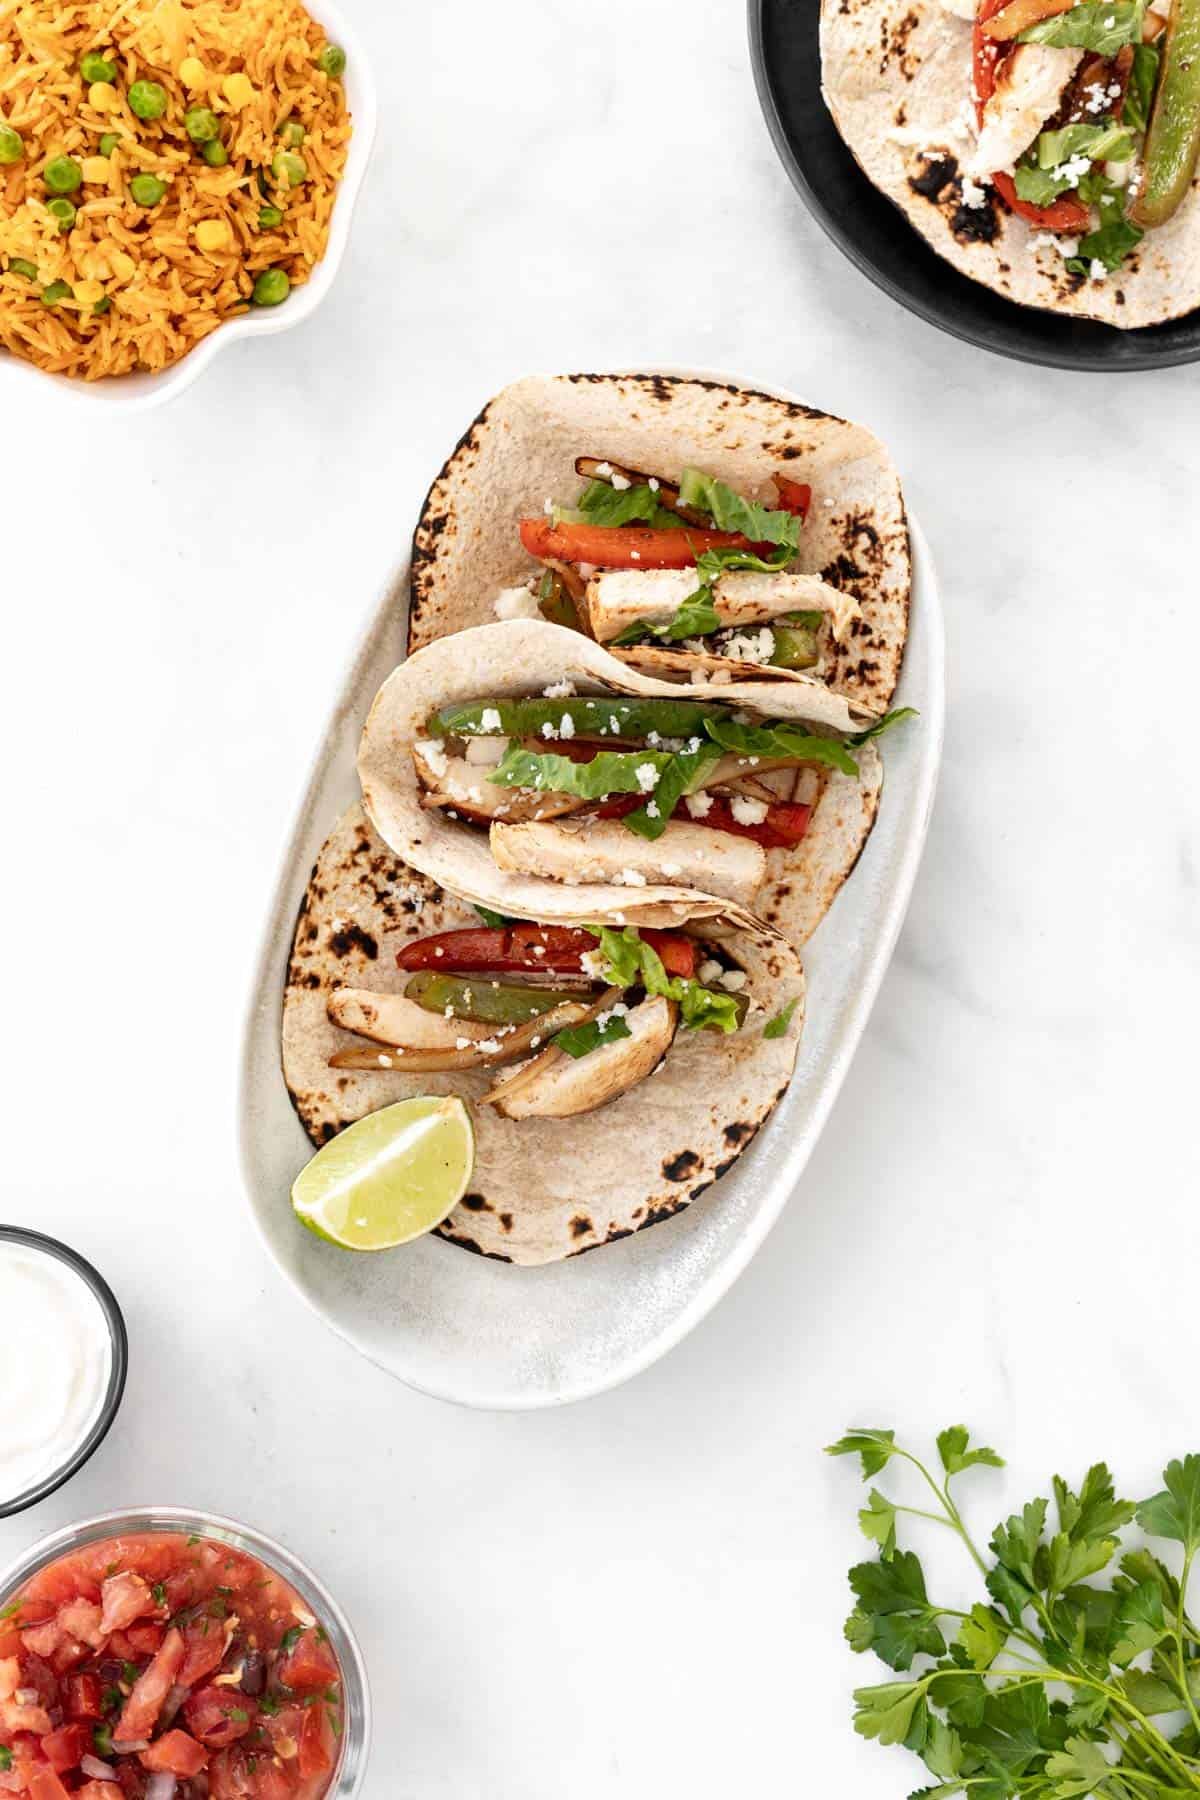 3 fajita tacos on a serving platter surrounded by another taco on a separate plate, a bunch of cilantro, and bowls of salsa, sour cream, and spanish rice.